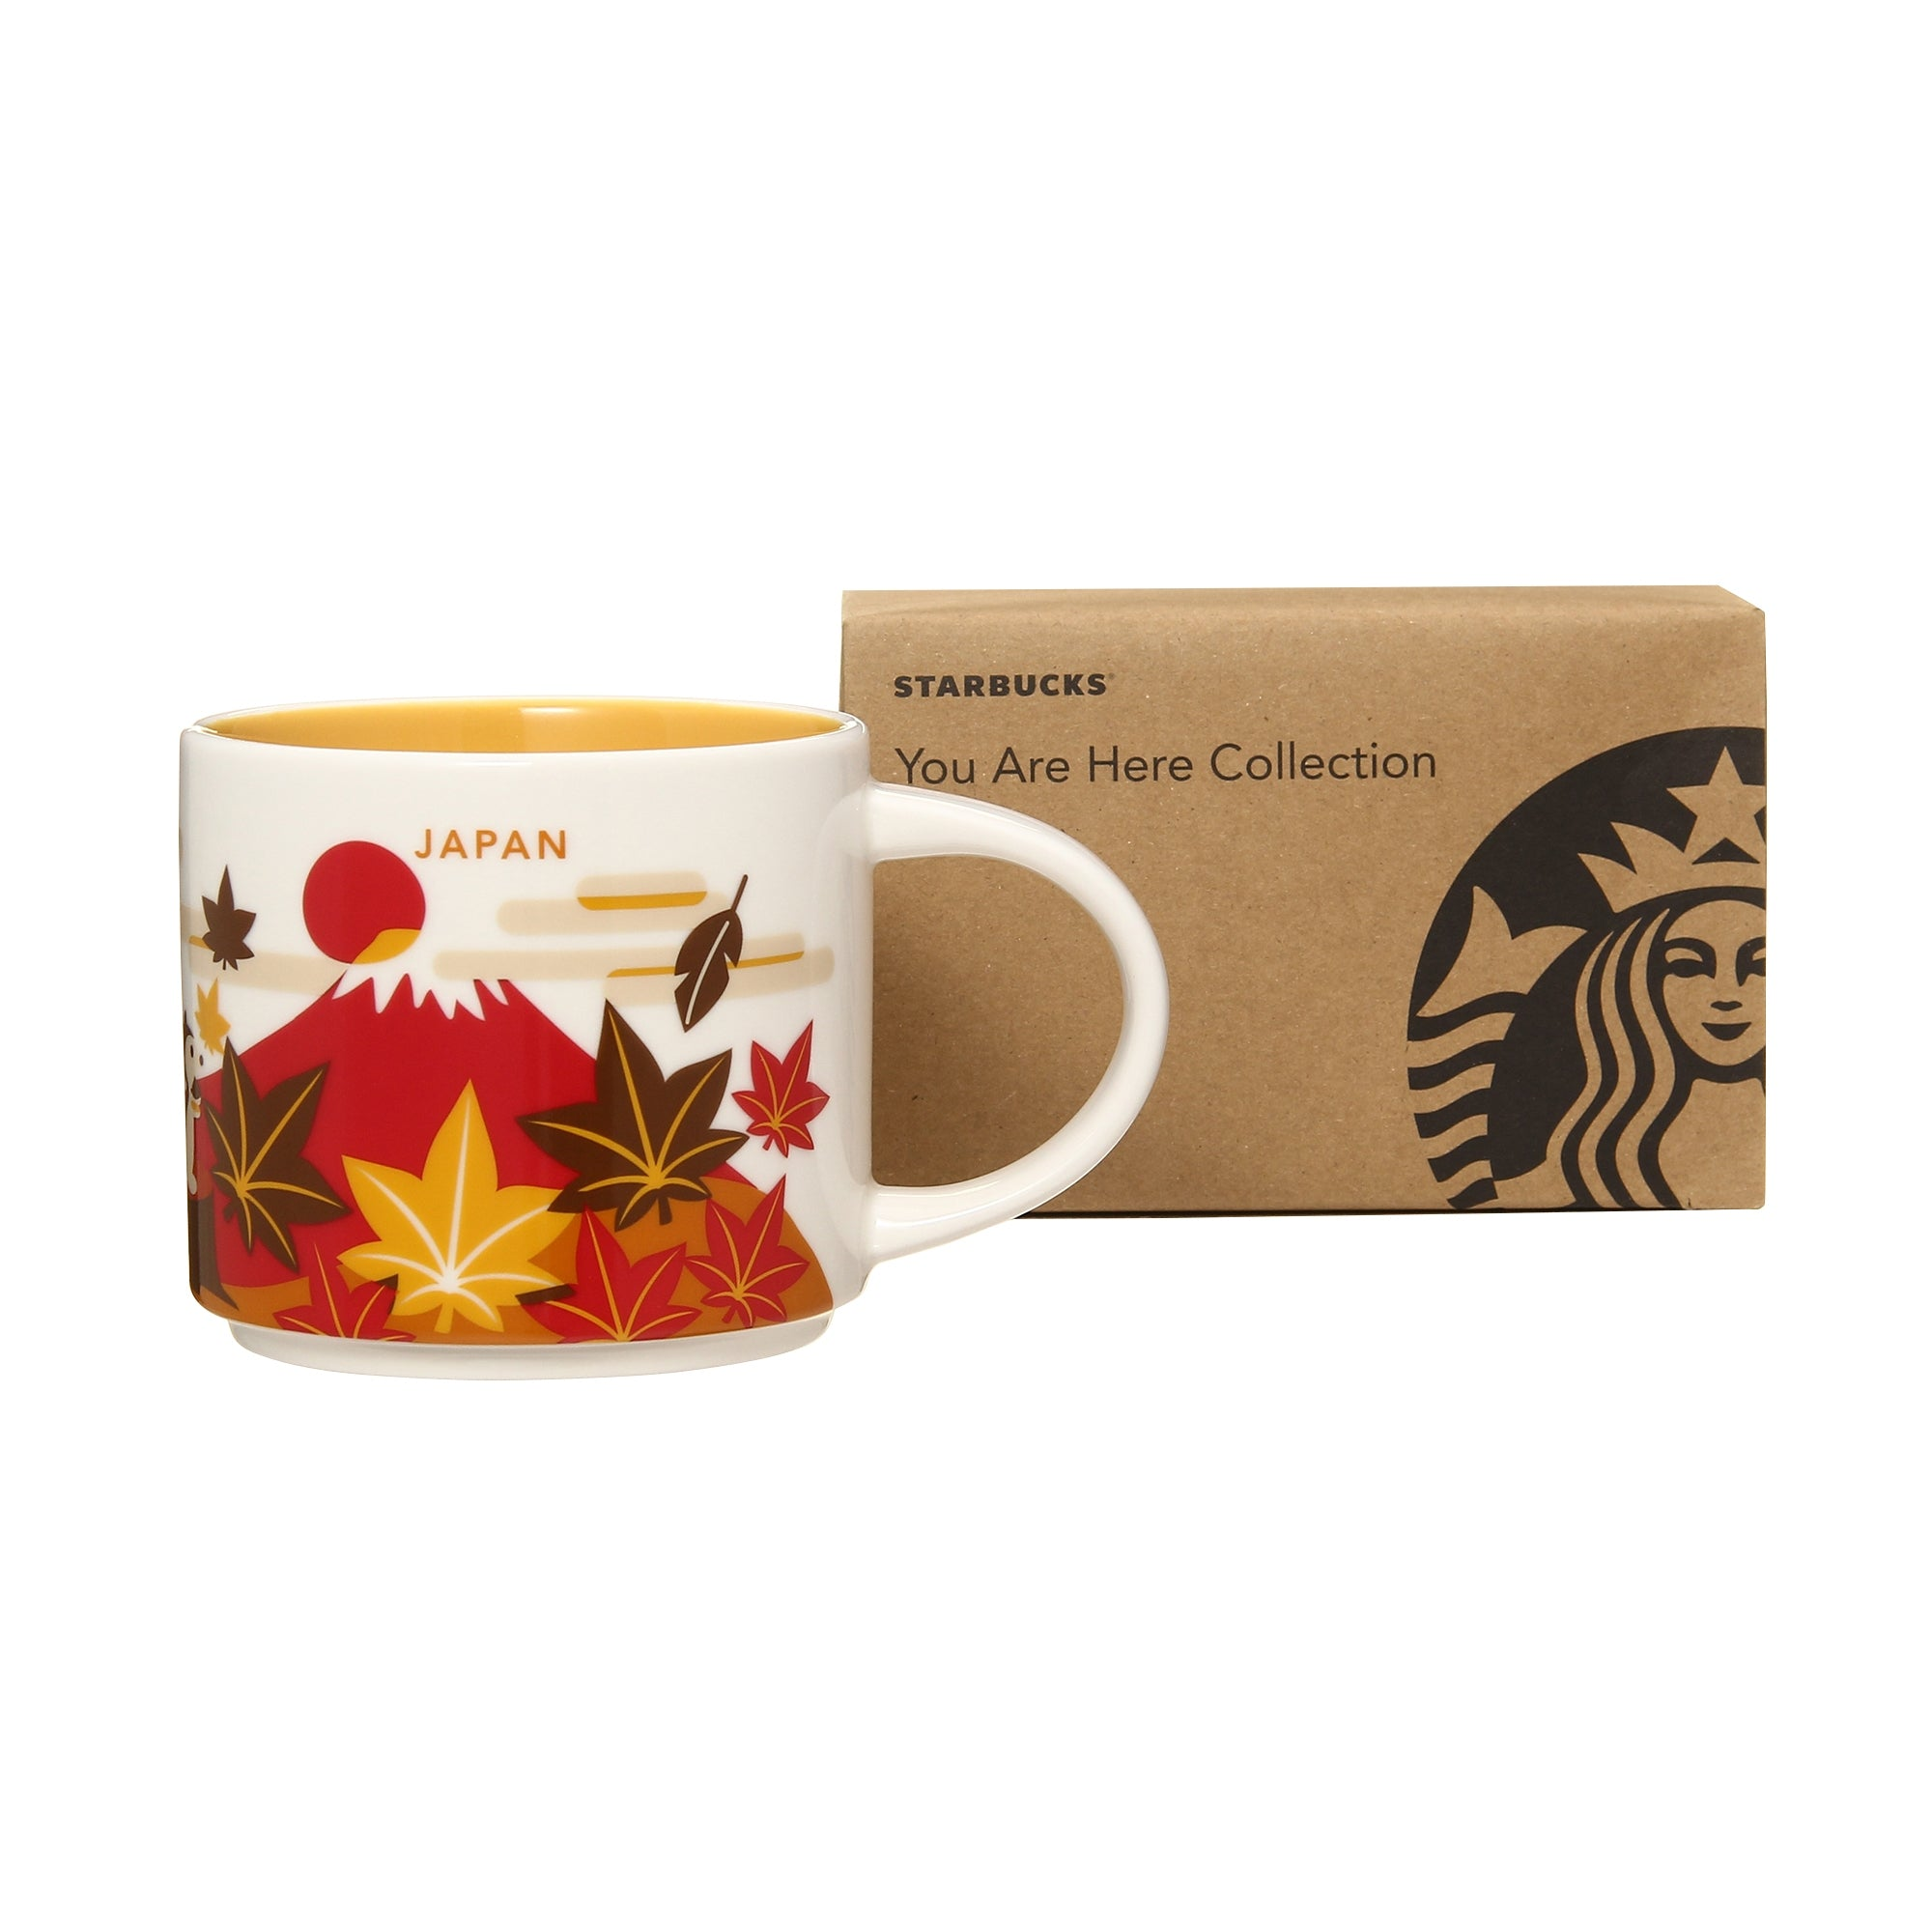 You Are Here Collection Mug Cup Japan Autumn 414ml Starbucks 2019